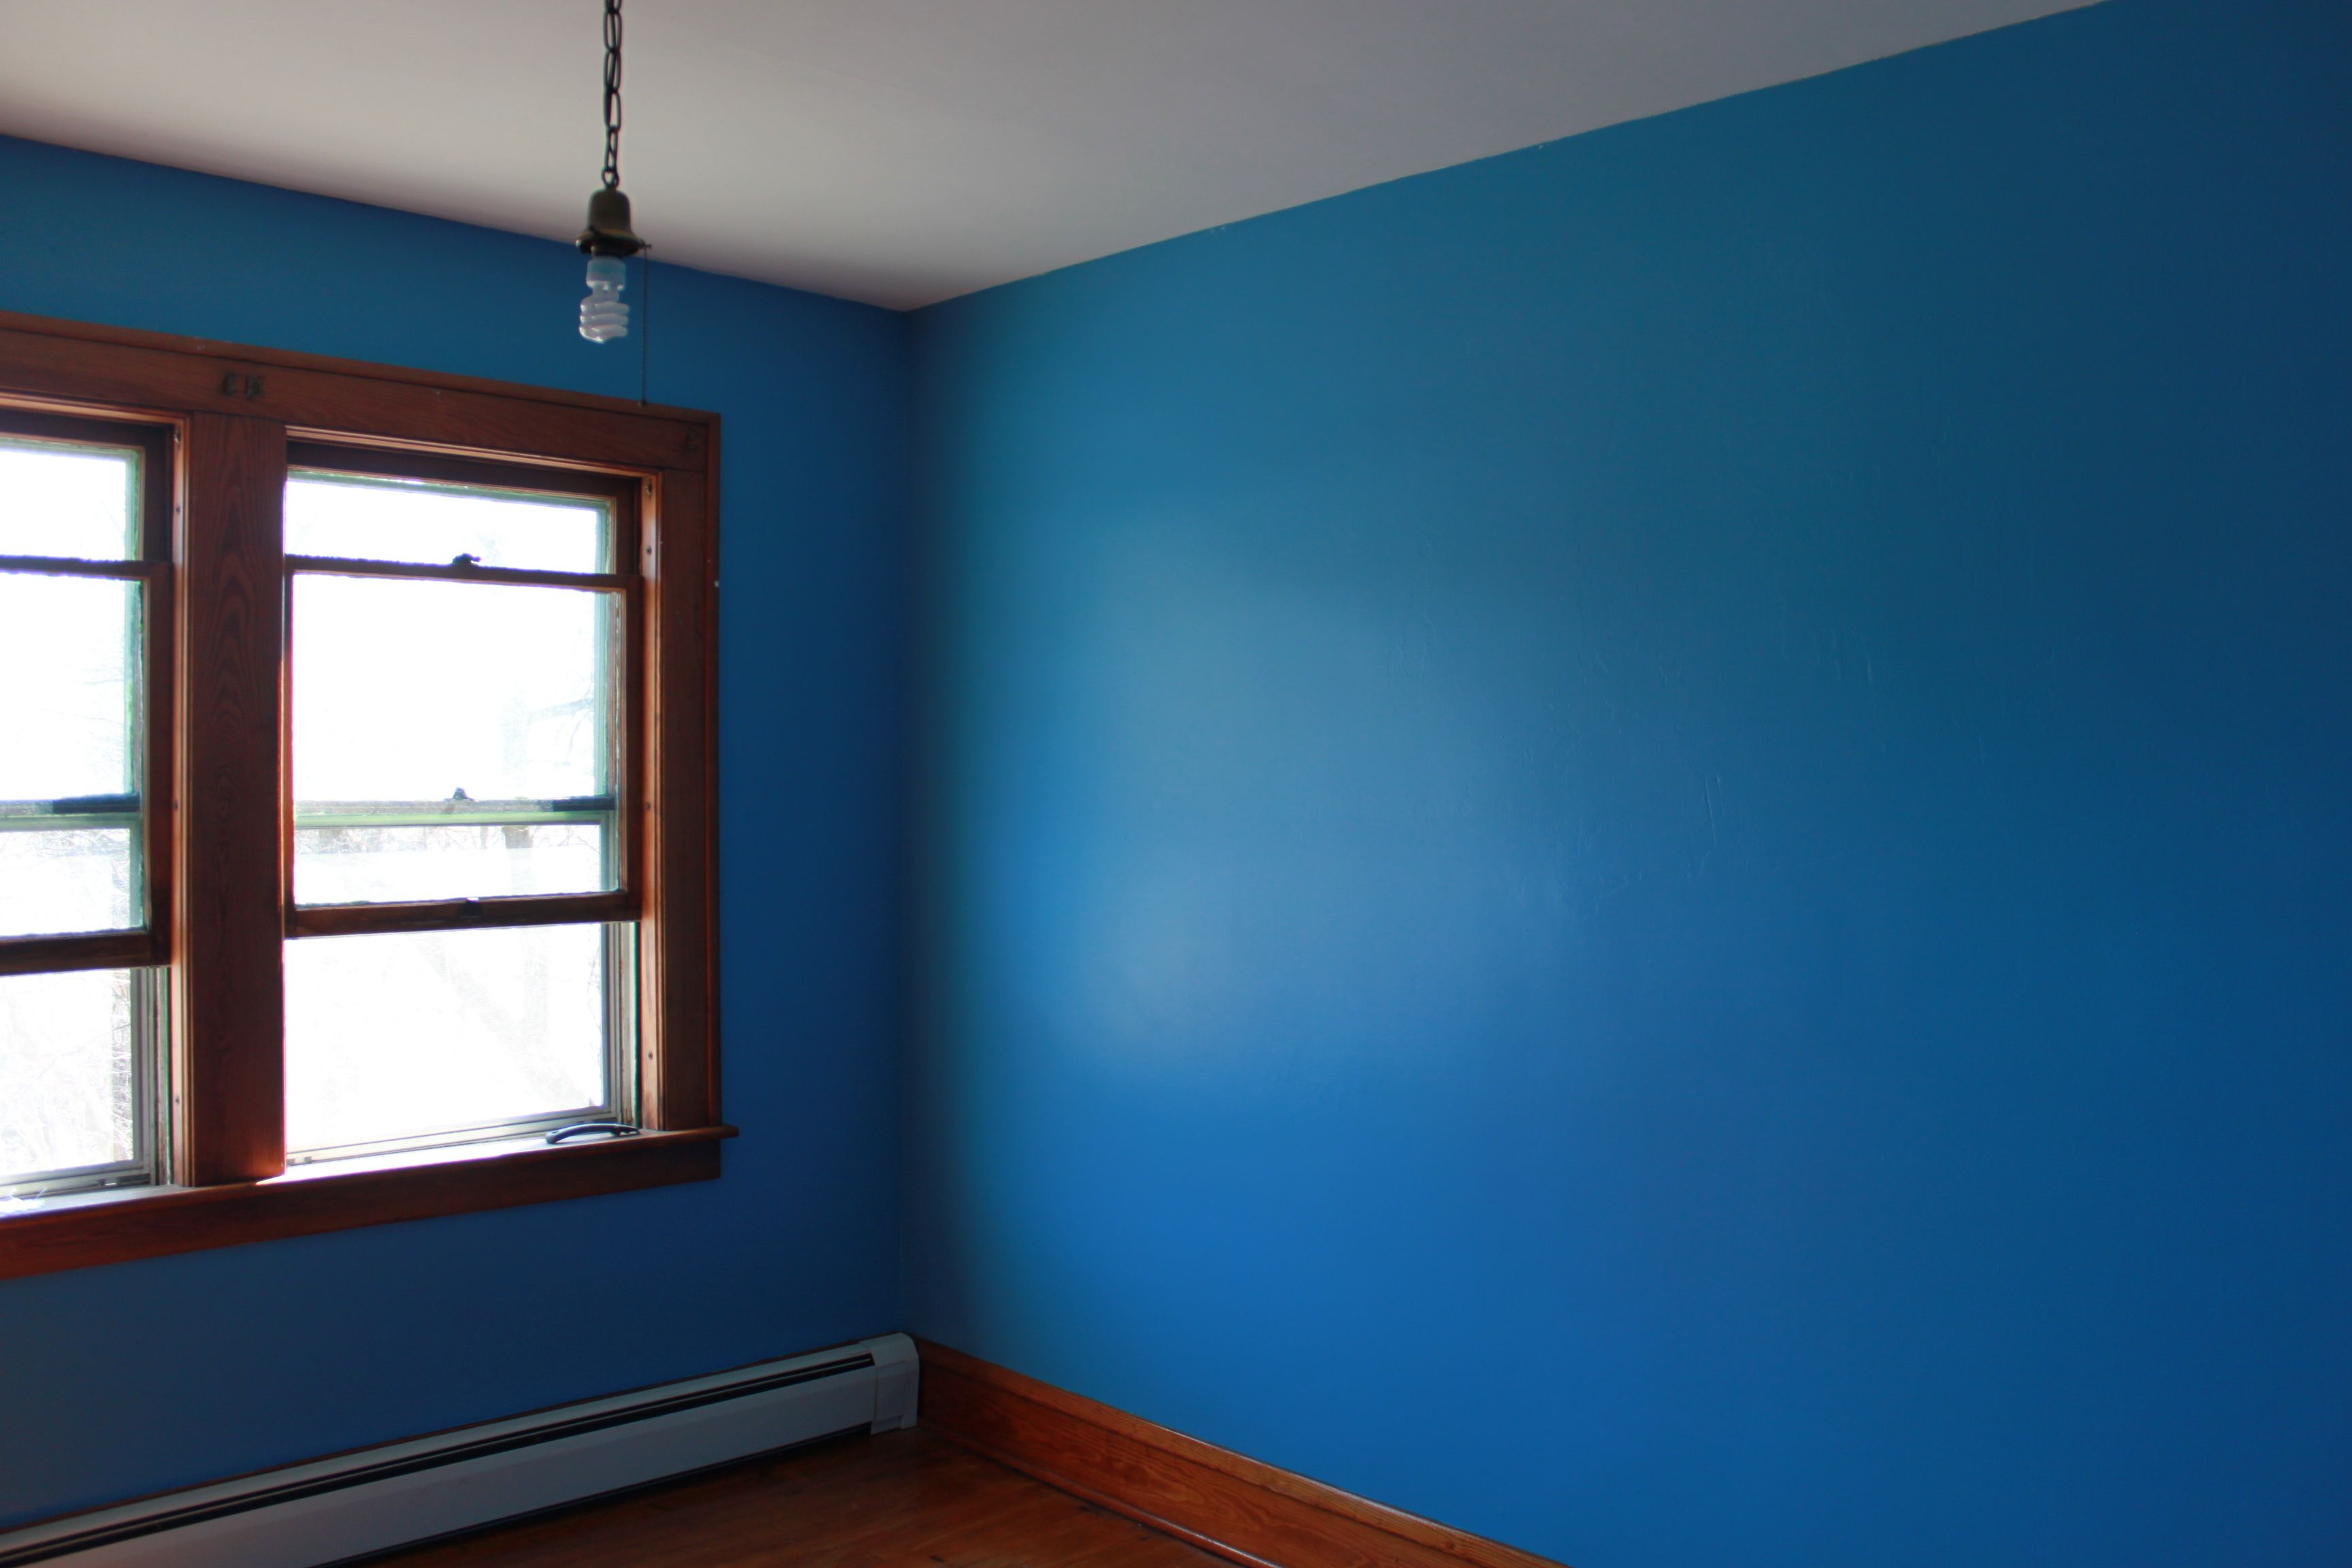 Blue Paint painting, alligatoring paint and plaster walls | blue walls